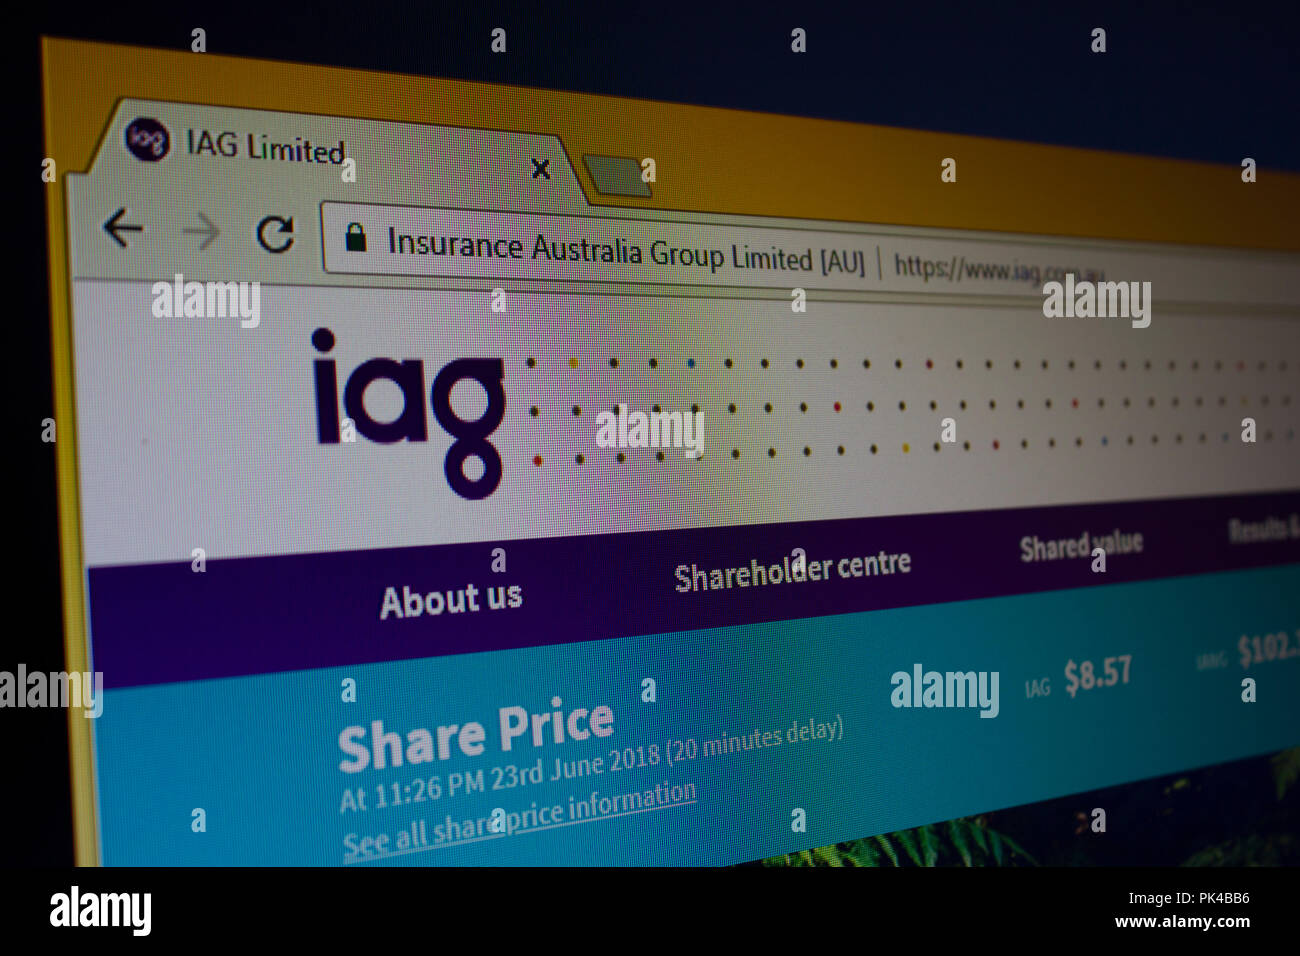 Iag Stock Photos & Iag Stock Images - Alamy